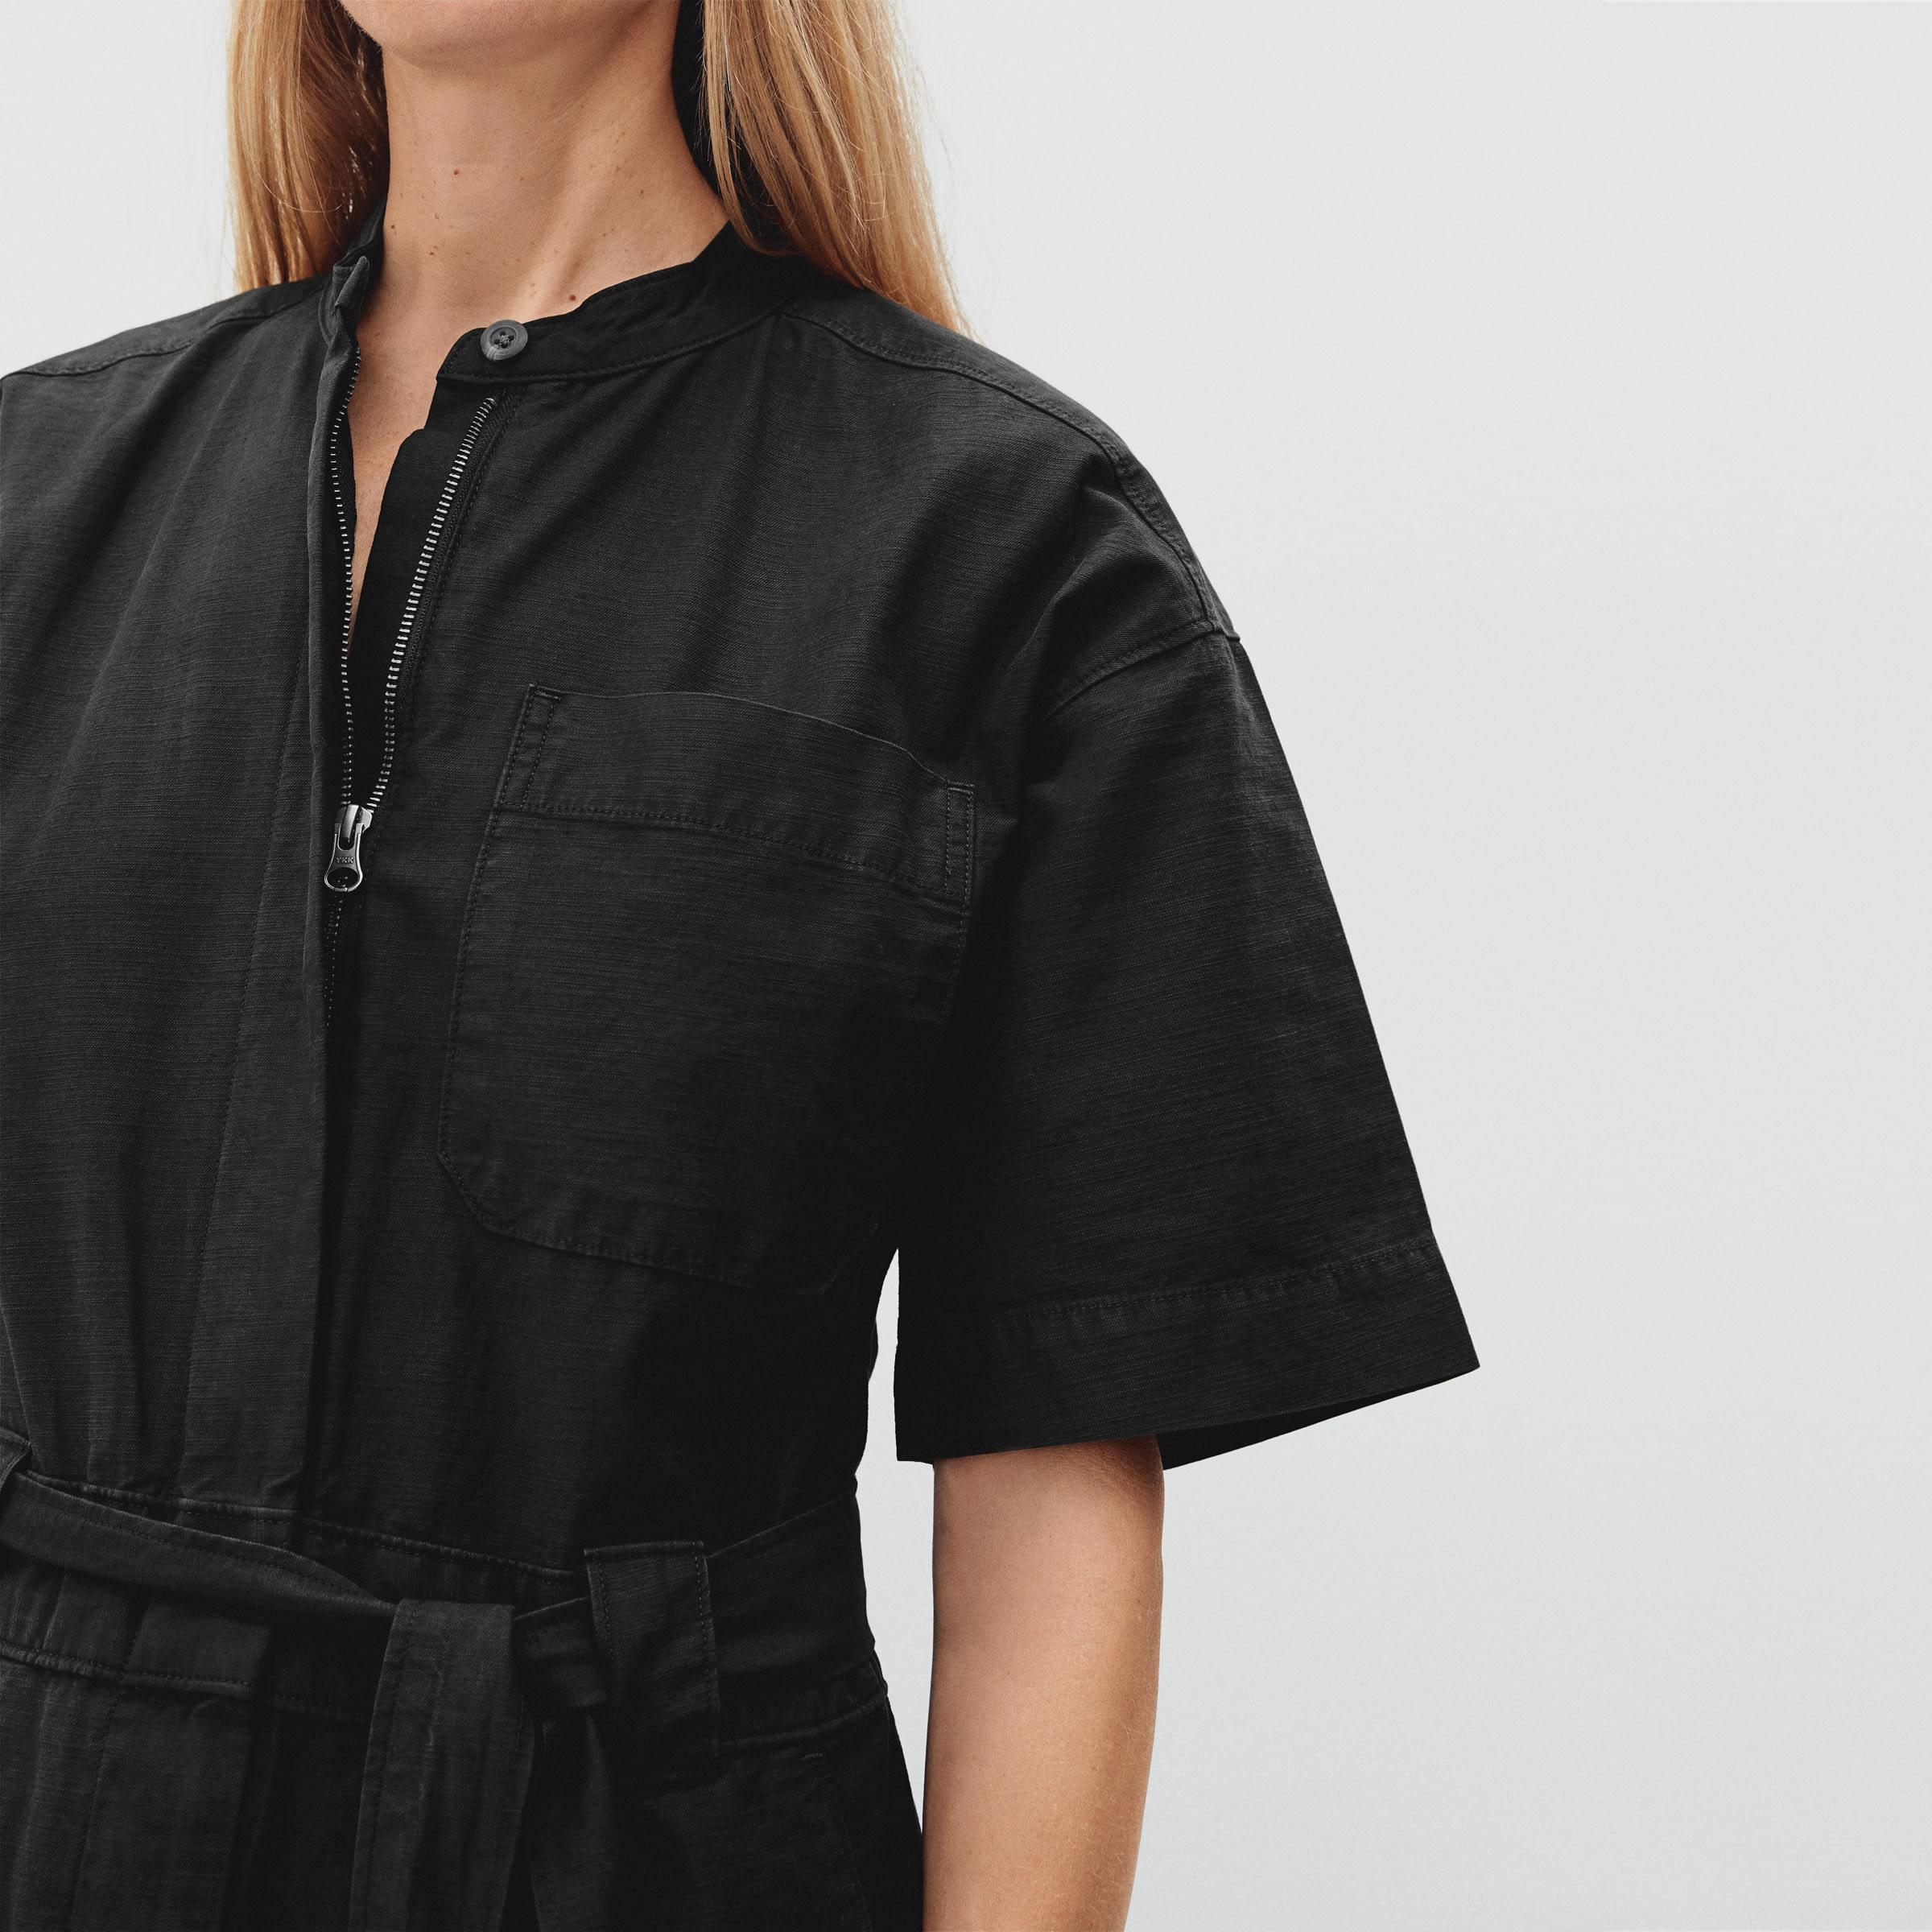 The Fatigue Short-Sleeve Jumpsuit 4